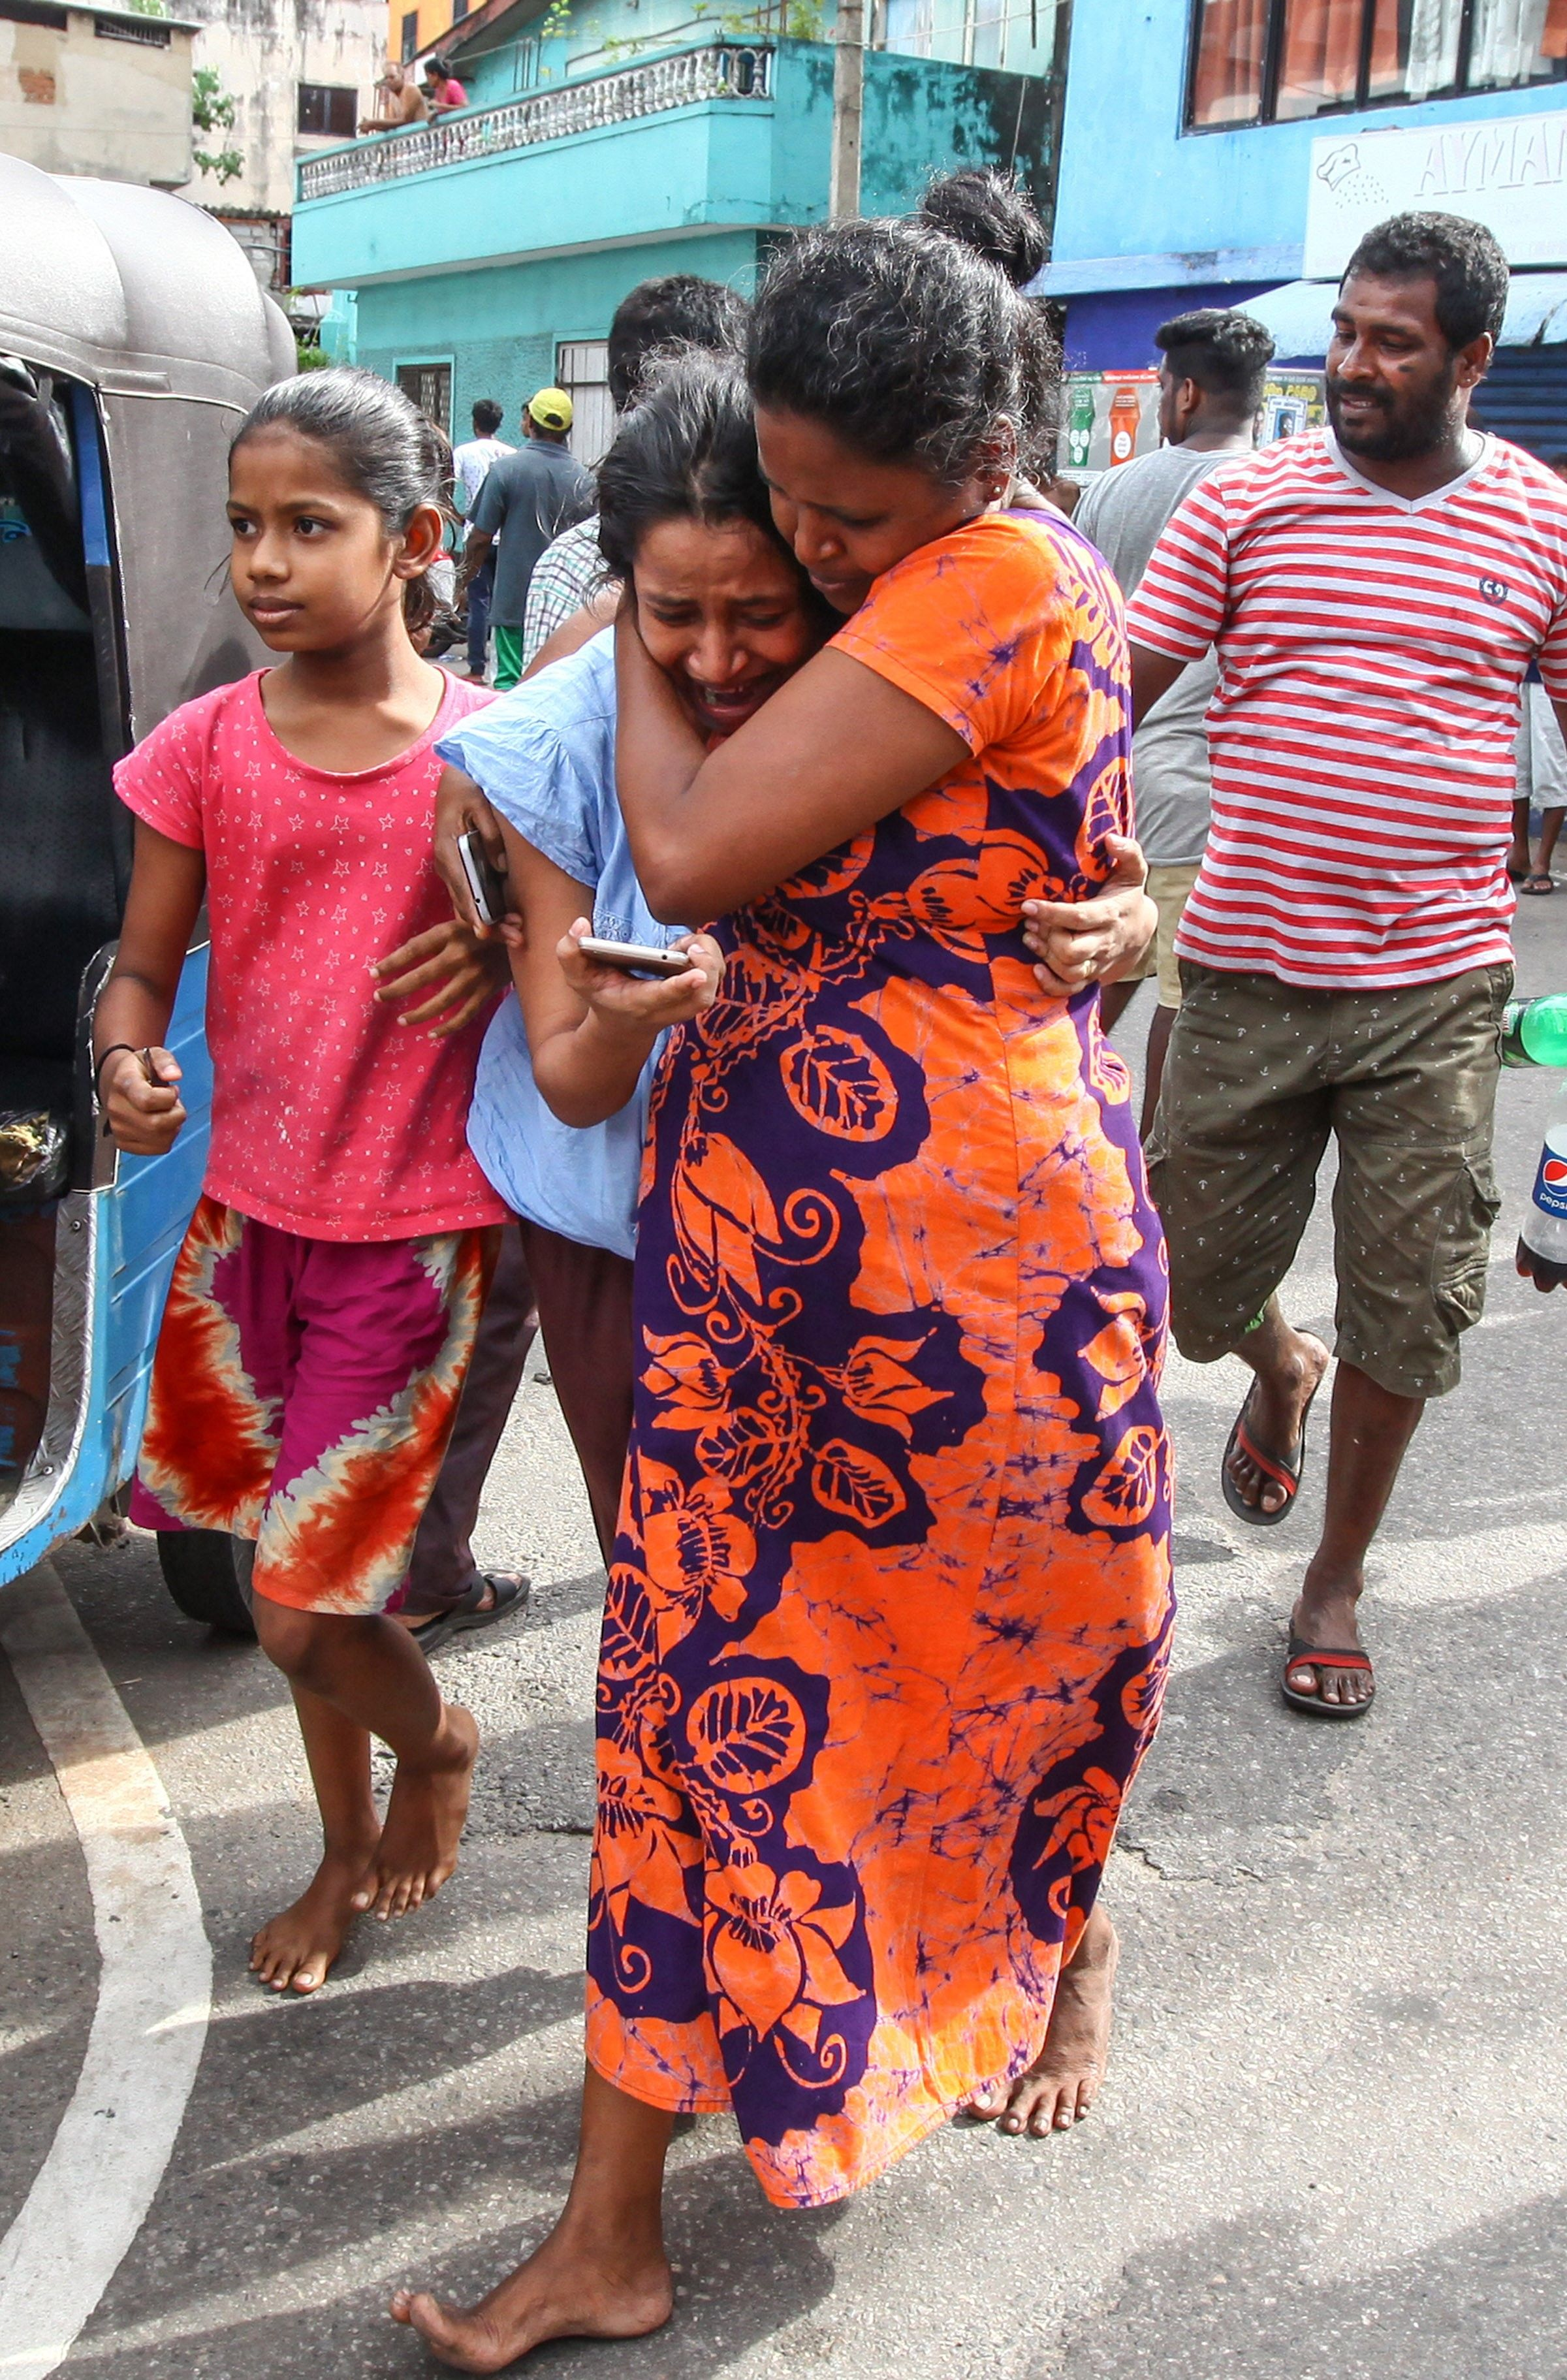 How to Donate to Sri Lanka's Victims of the Easter Bombings